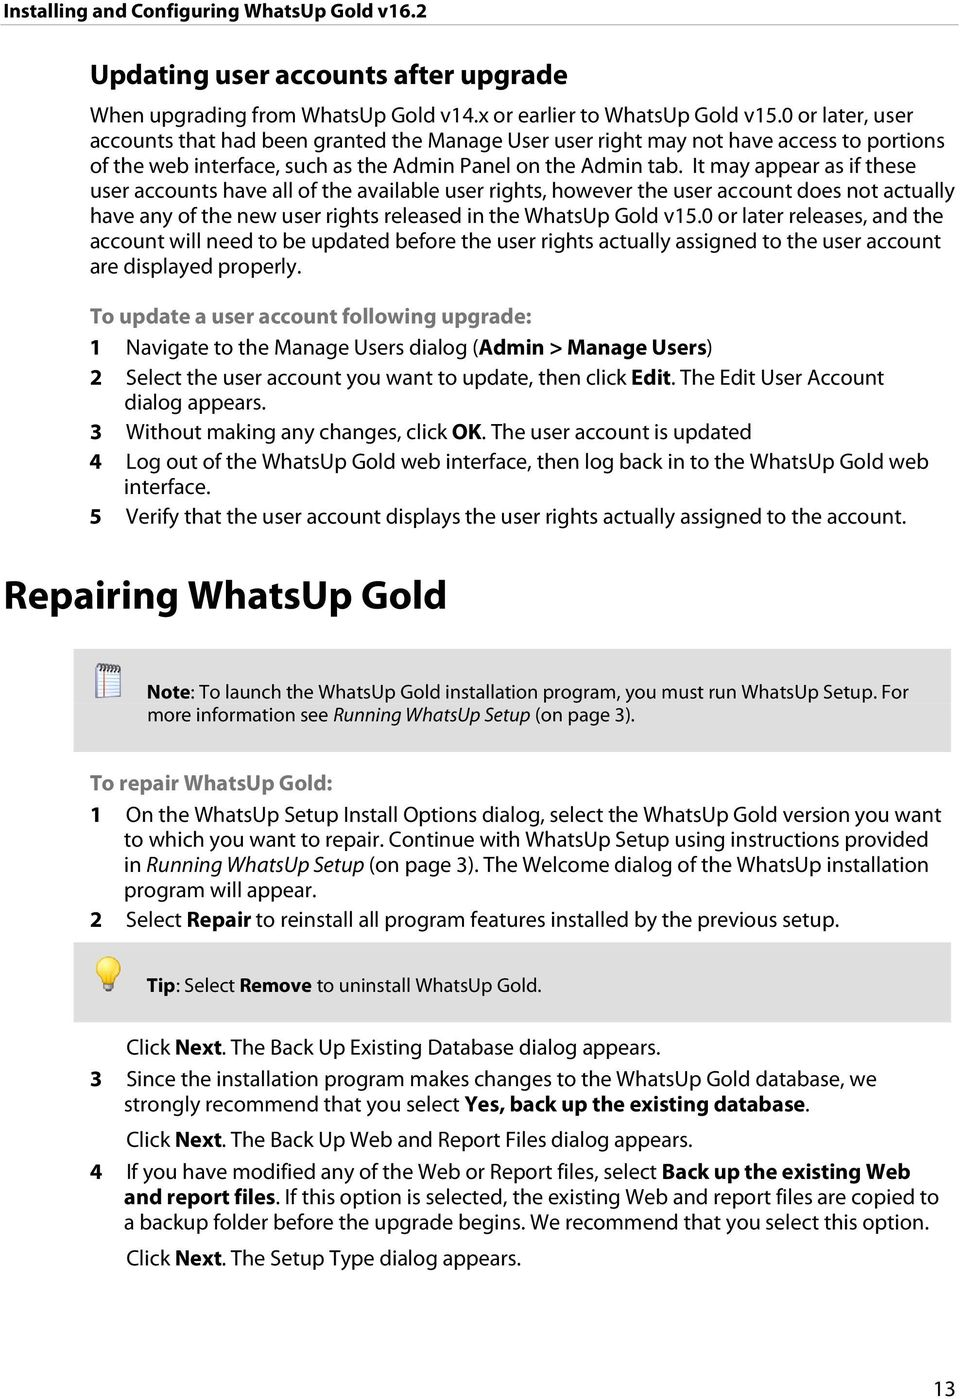 It may appear as if these user accounts have all of the available user rights, however the user account does not actually have any of the new user rights released in the WhatsUp Gold v15.